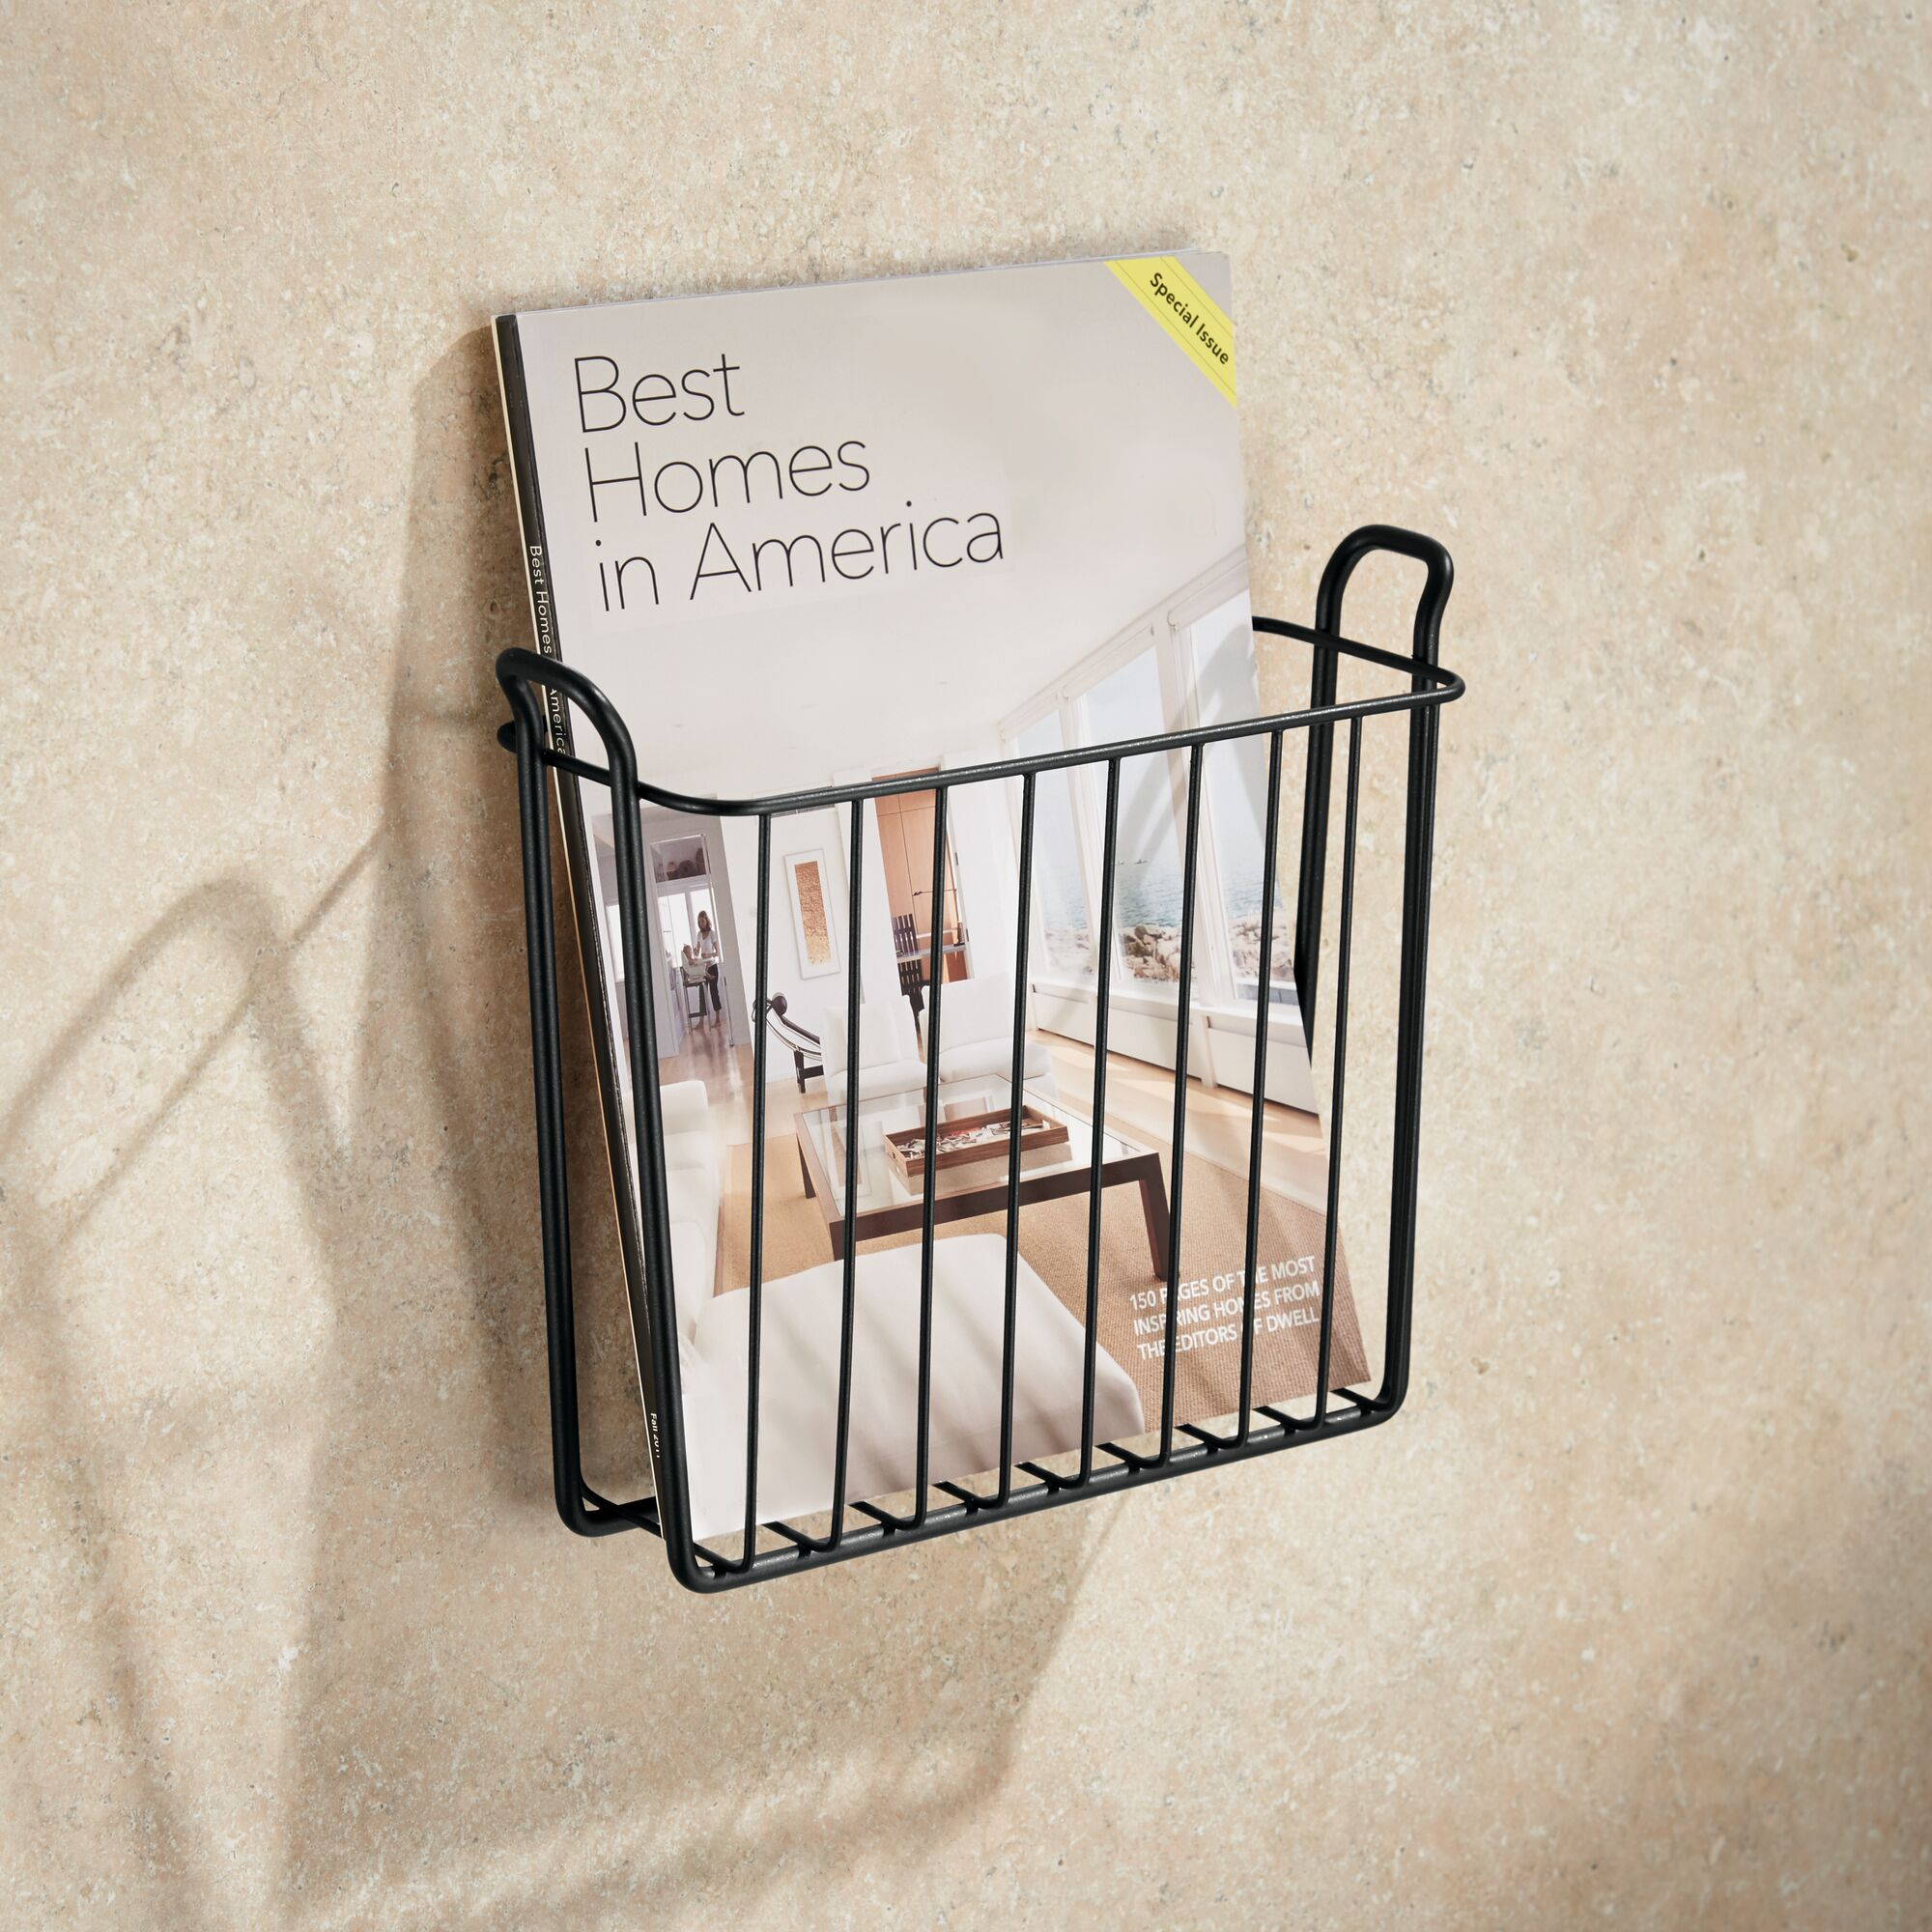 mDesign-Metal-Wall-Mount-Magazine-Book-Holder-Compact-Rack thumbnail 30